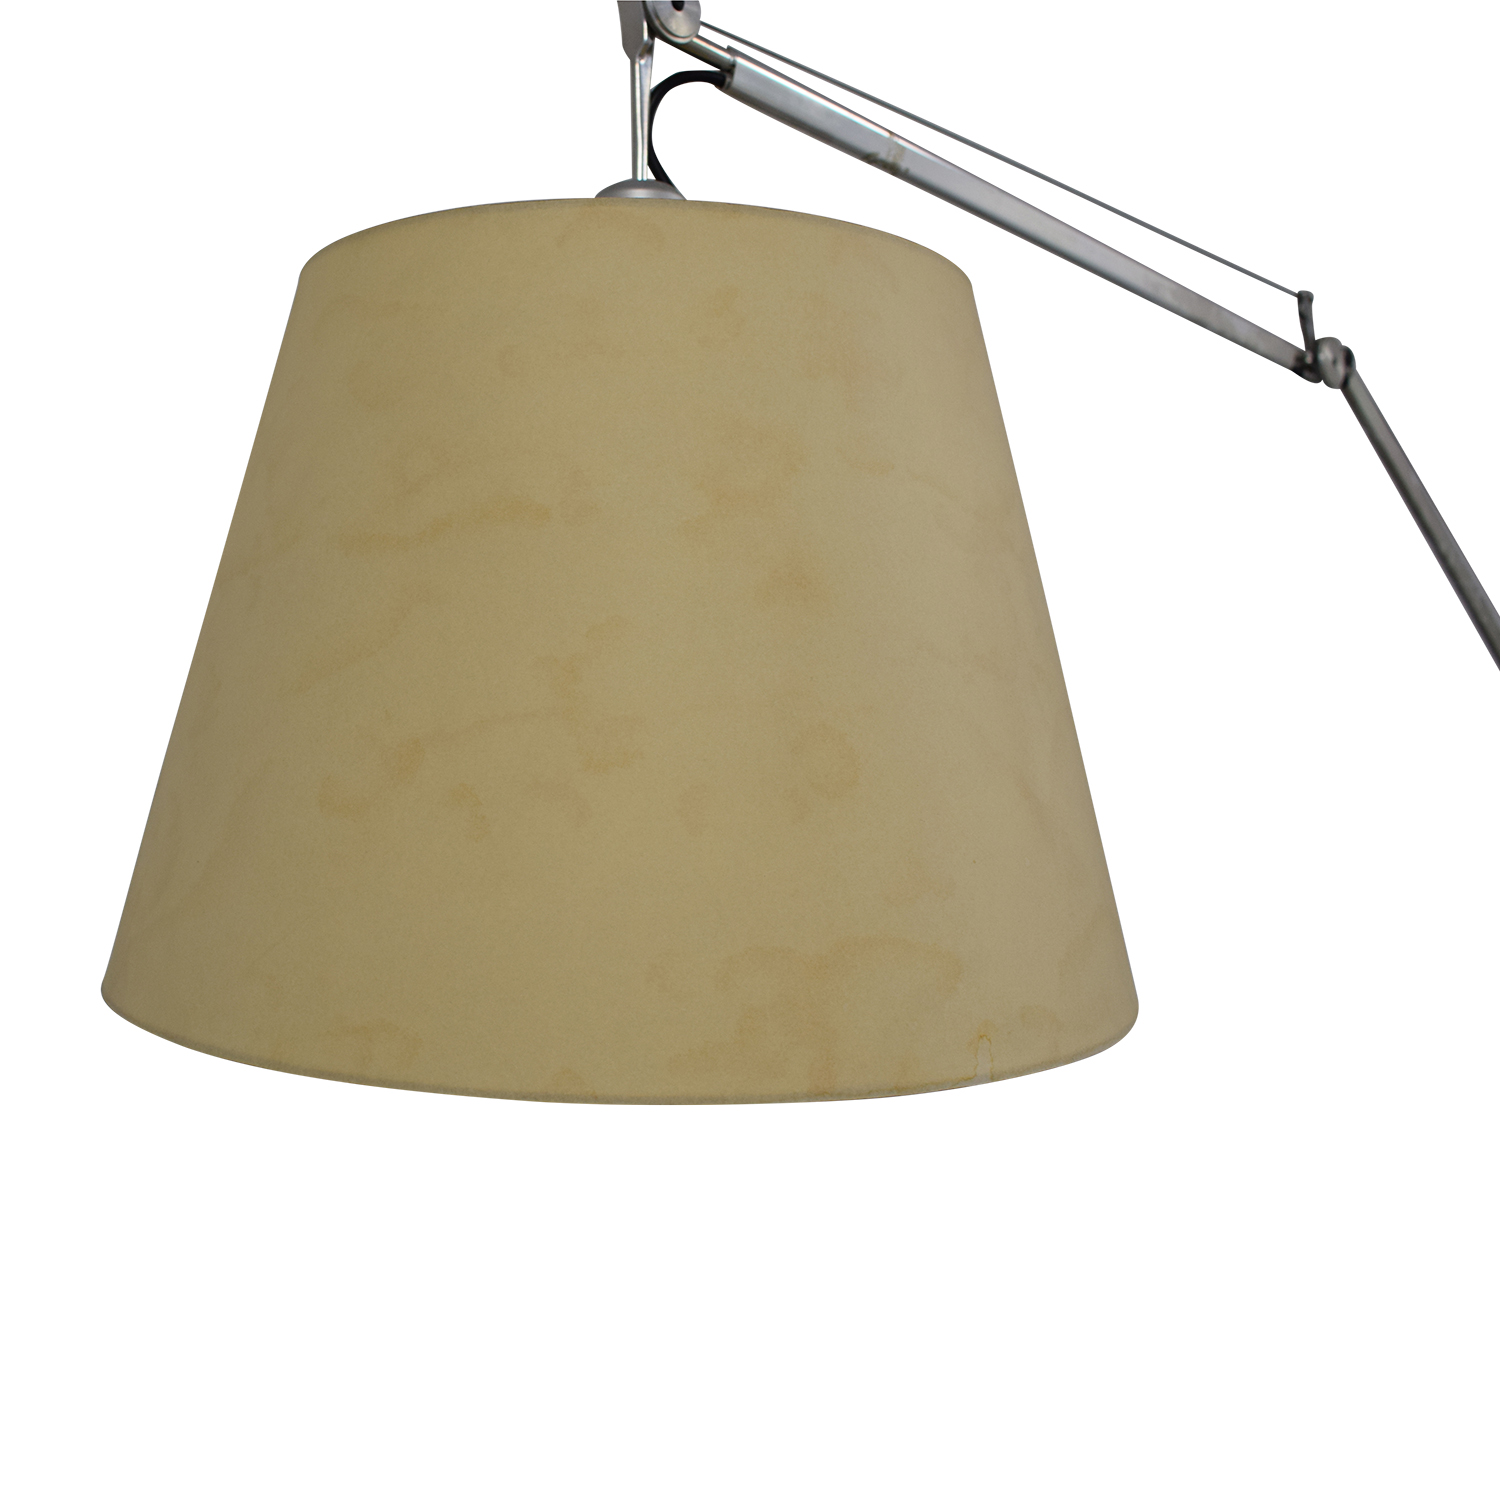 shop Artemide Tolomeo Mega Floor Lamp Artemide Decor